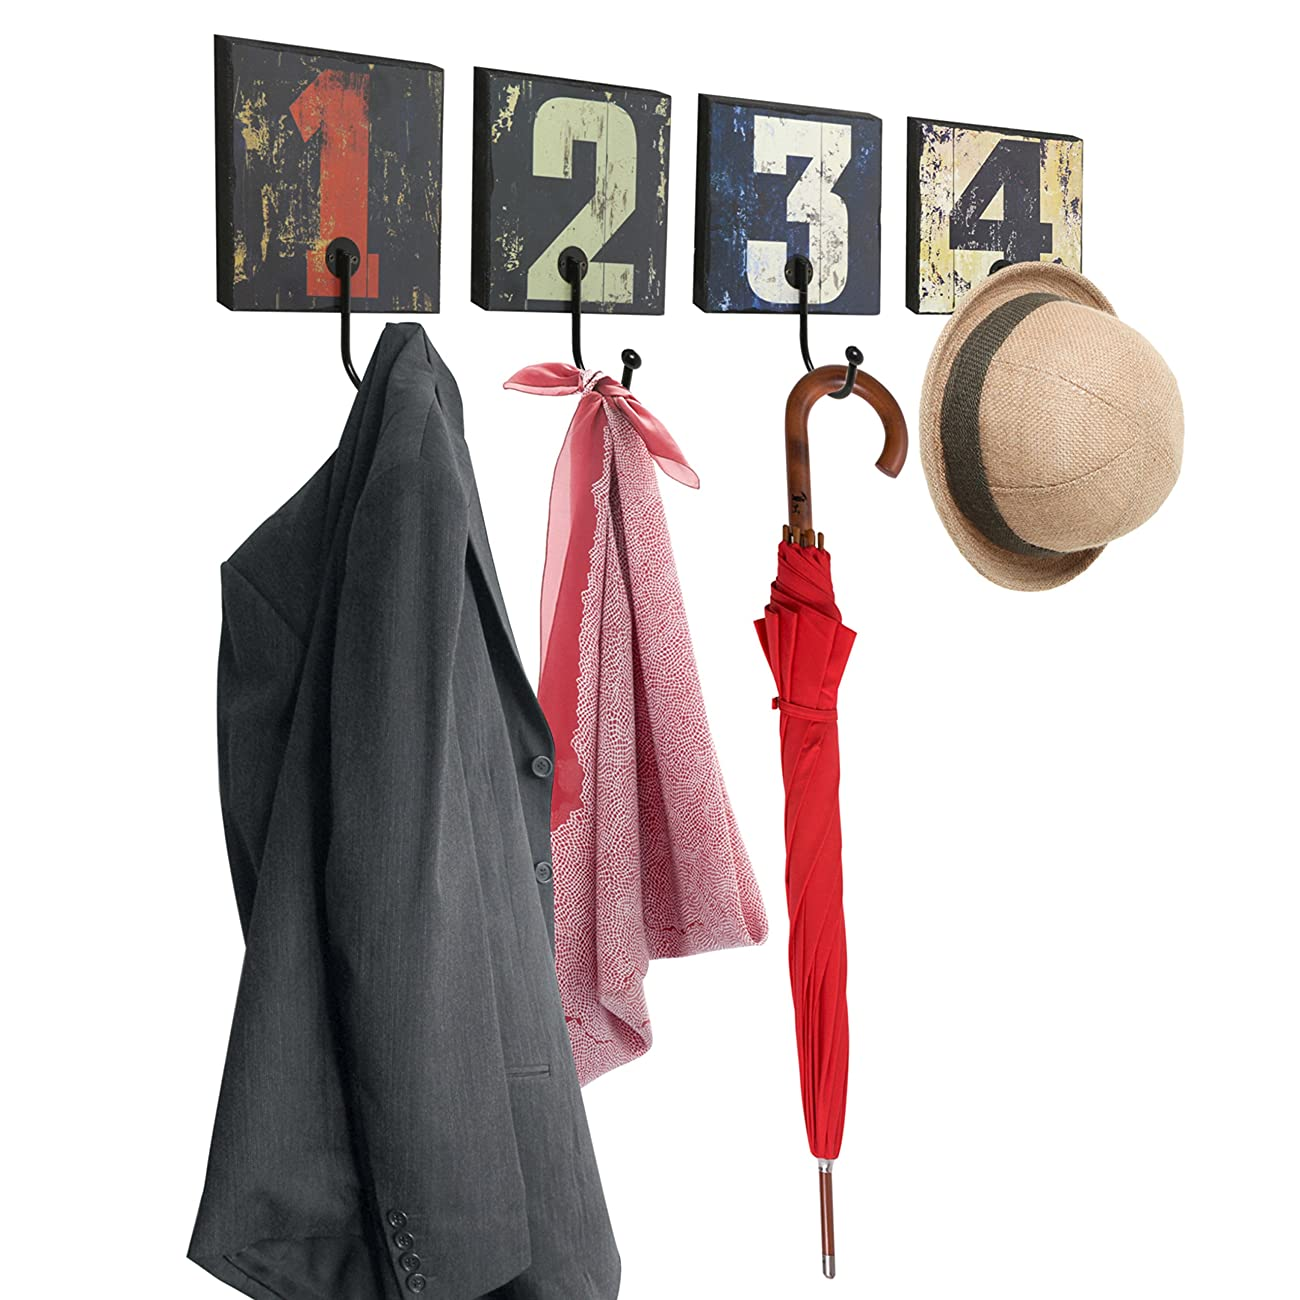 Decorative Vintage Rustic Style Numbers Design Wall Mounted Wood & Metal Hanging Storage Organizer Hooks 0